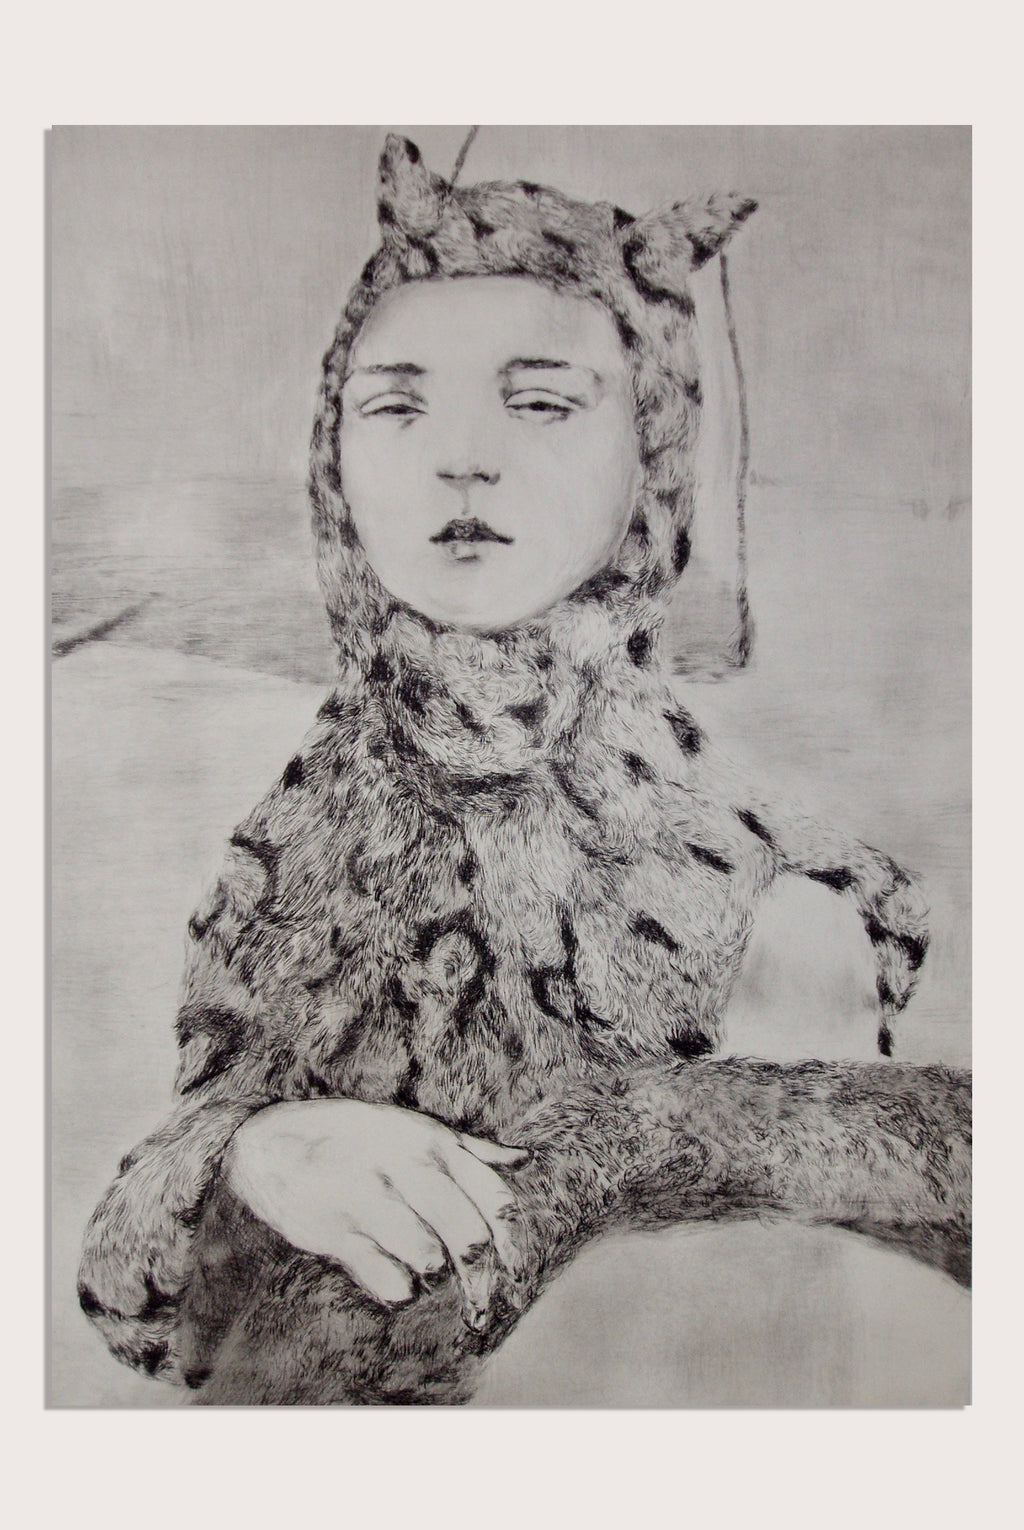 'Leopard', a limited edition, figurative etching by contemporary artist Jesse Leroy Smith